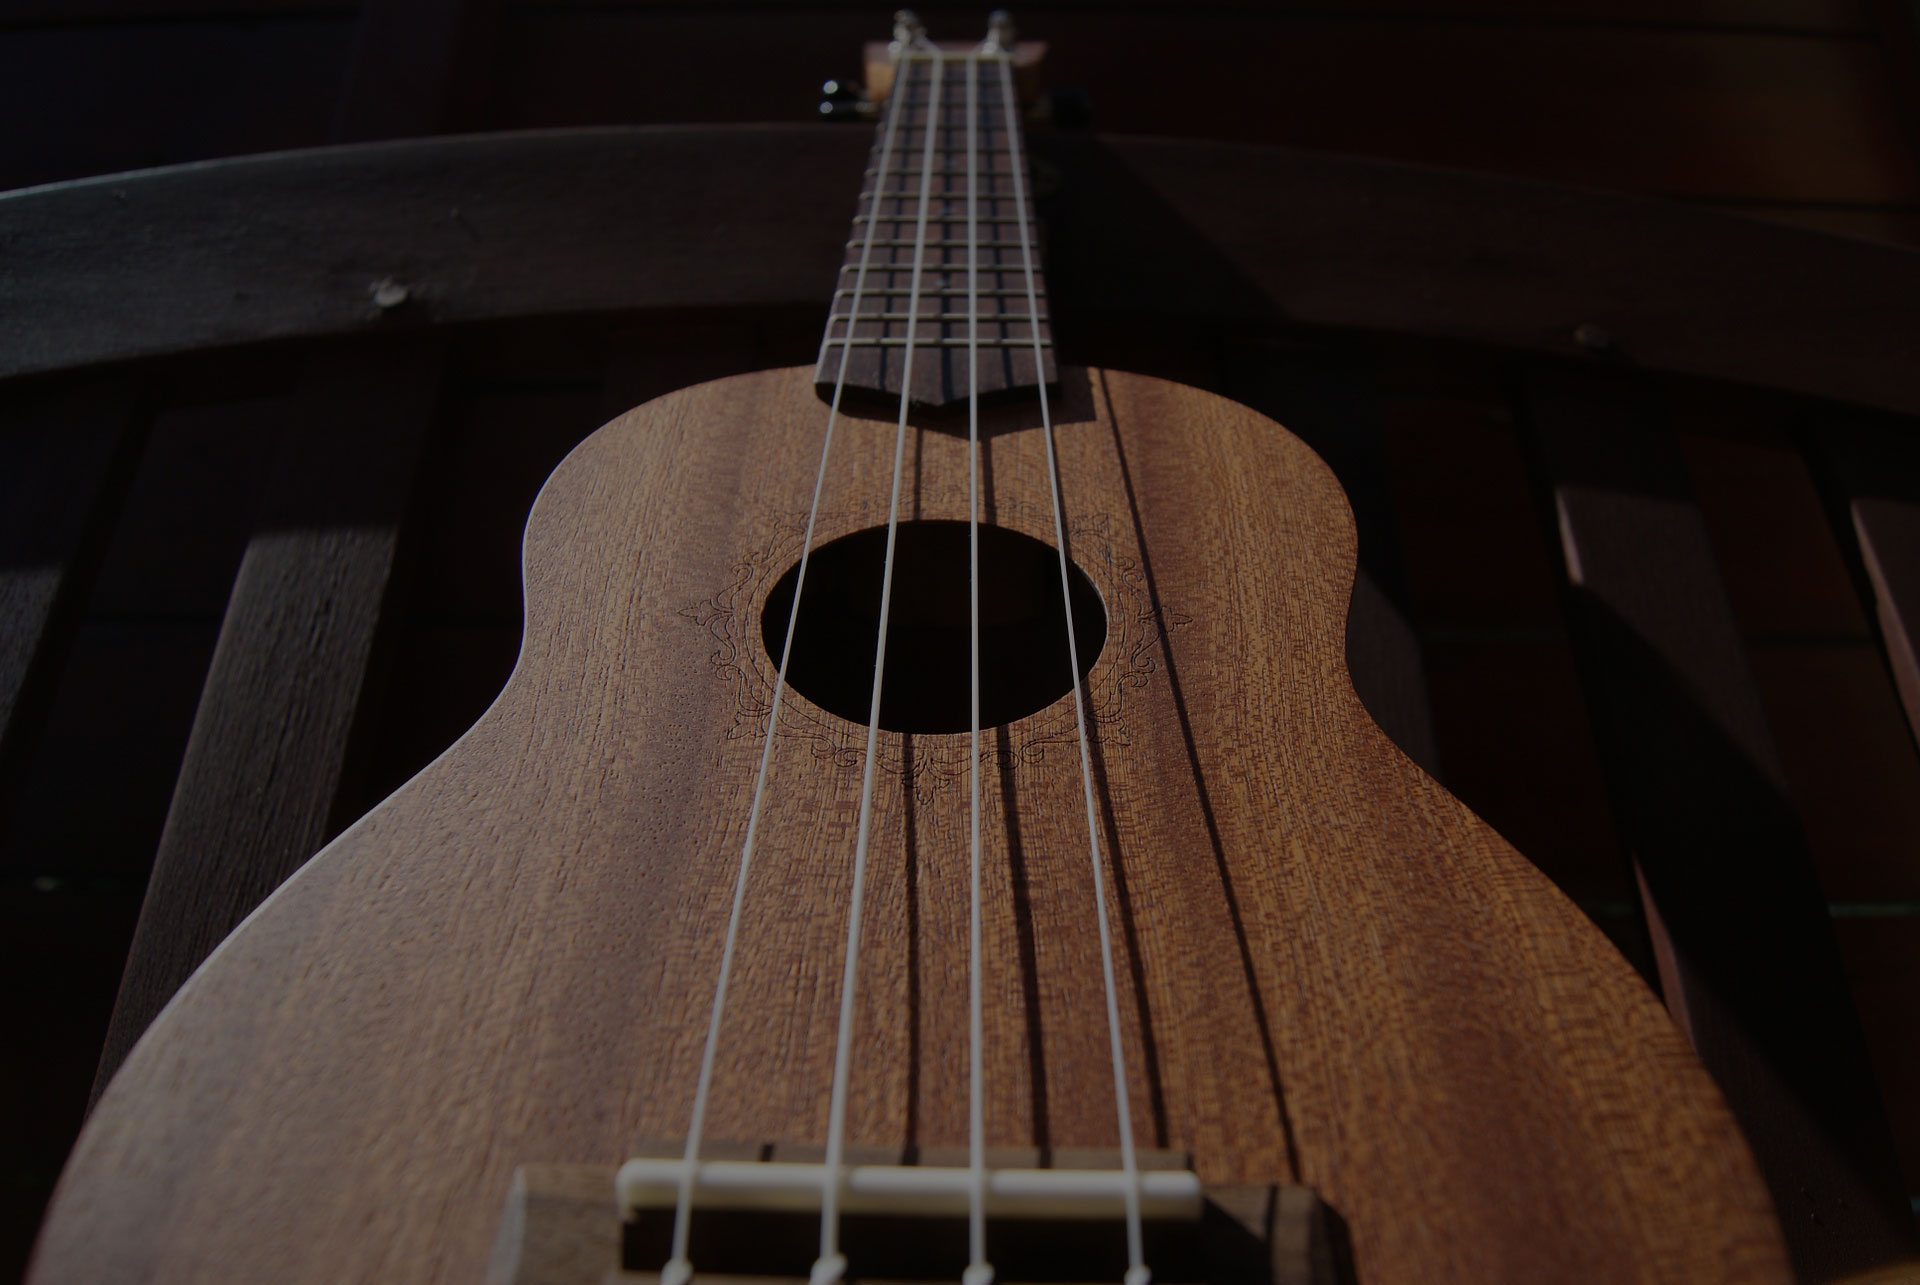 Ukulele music strings hollow wood